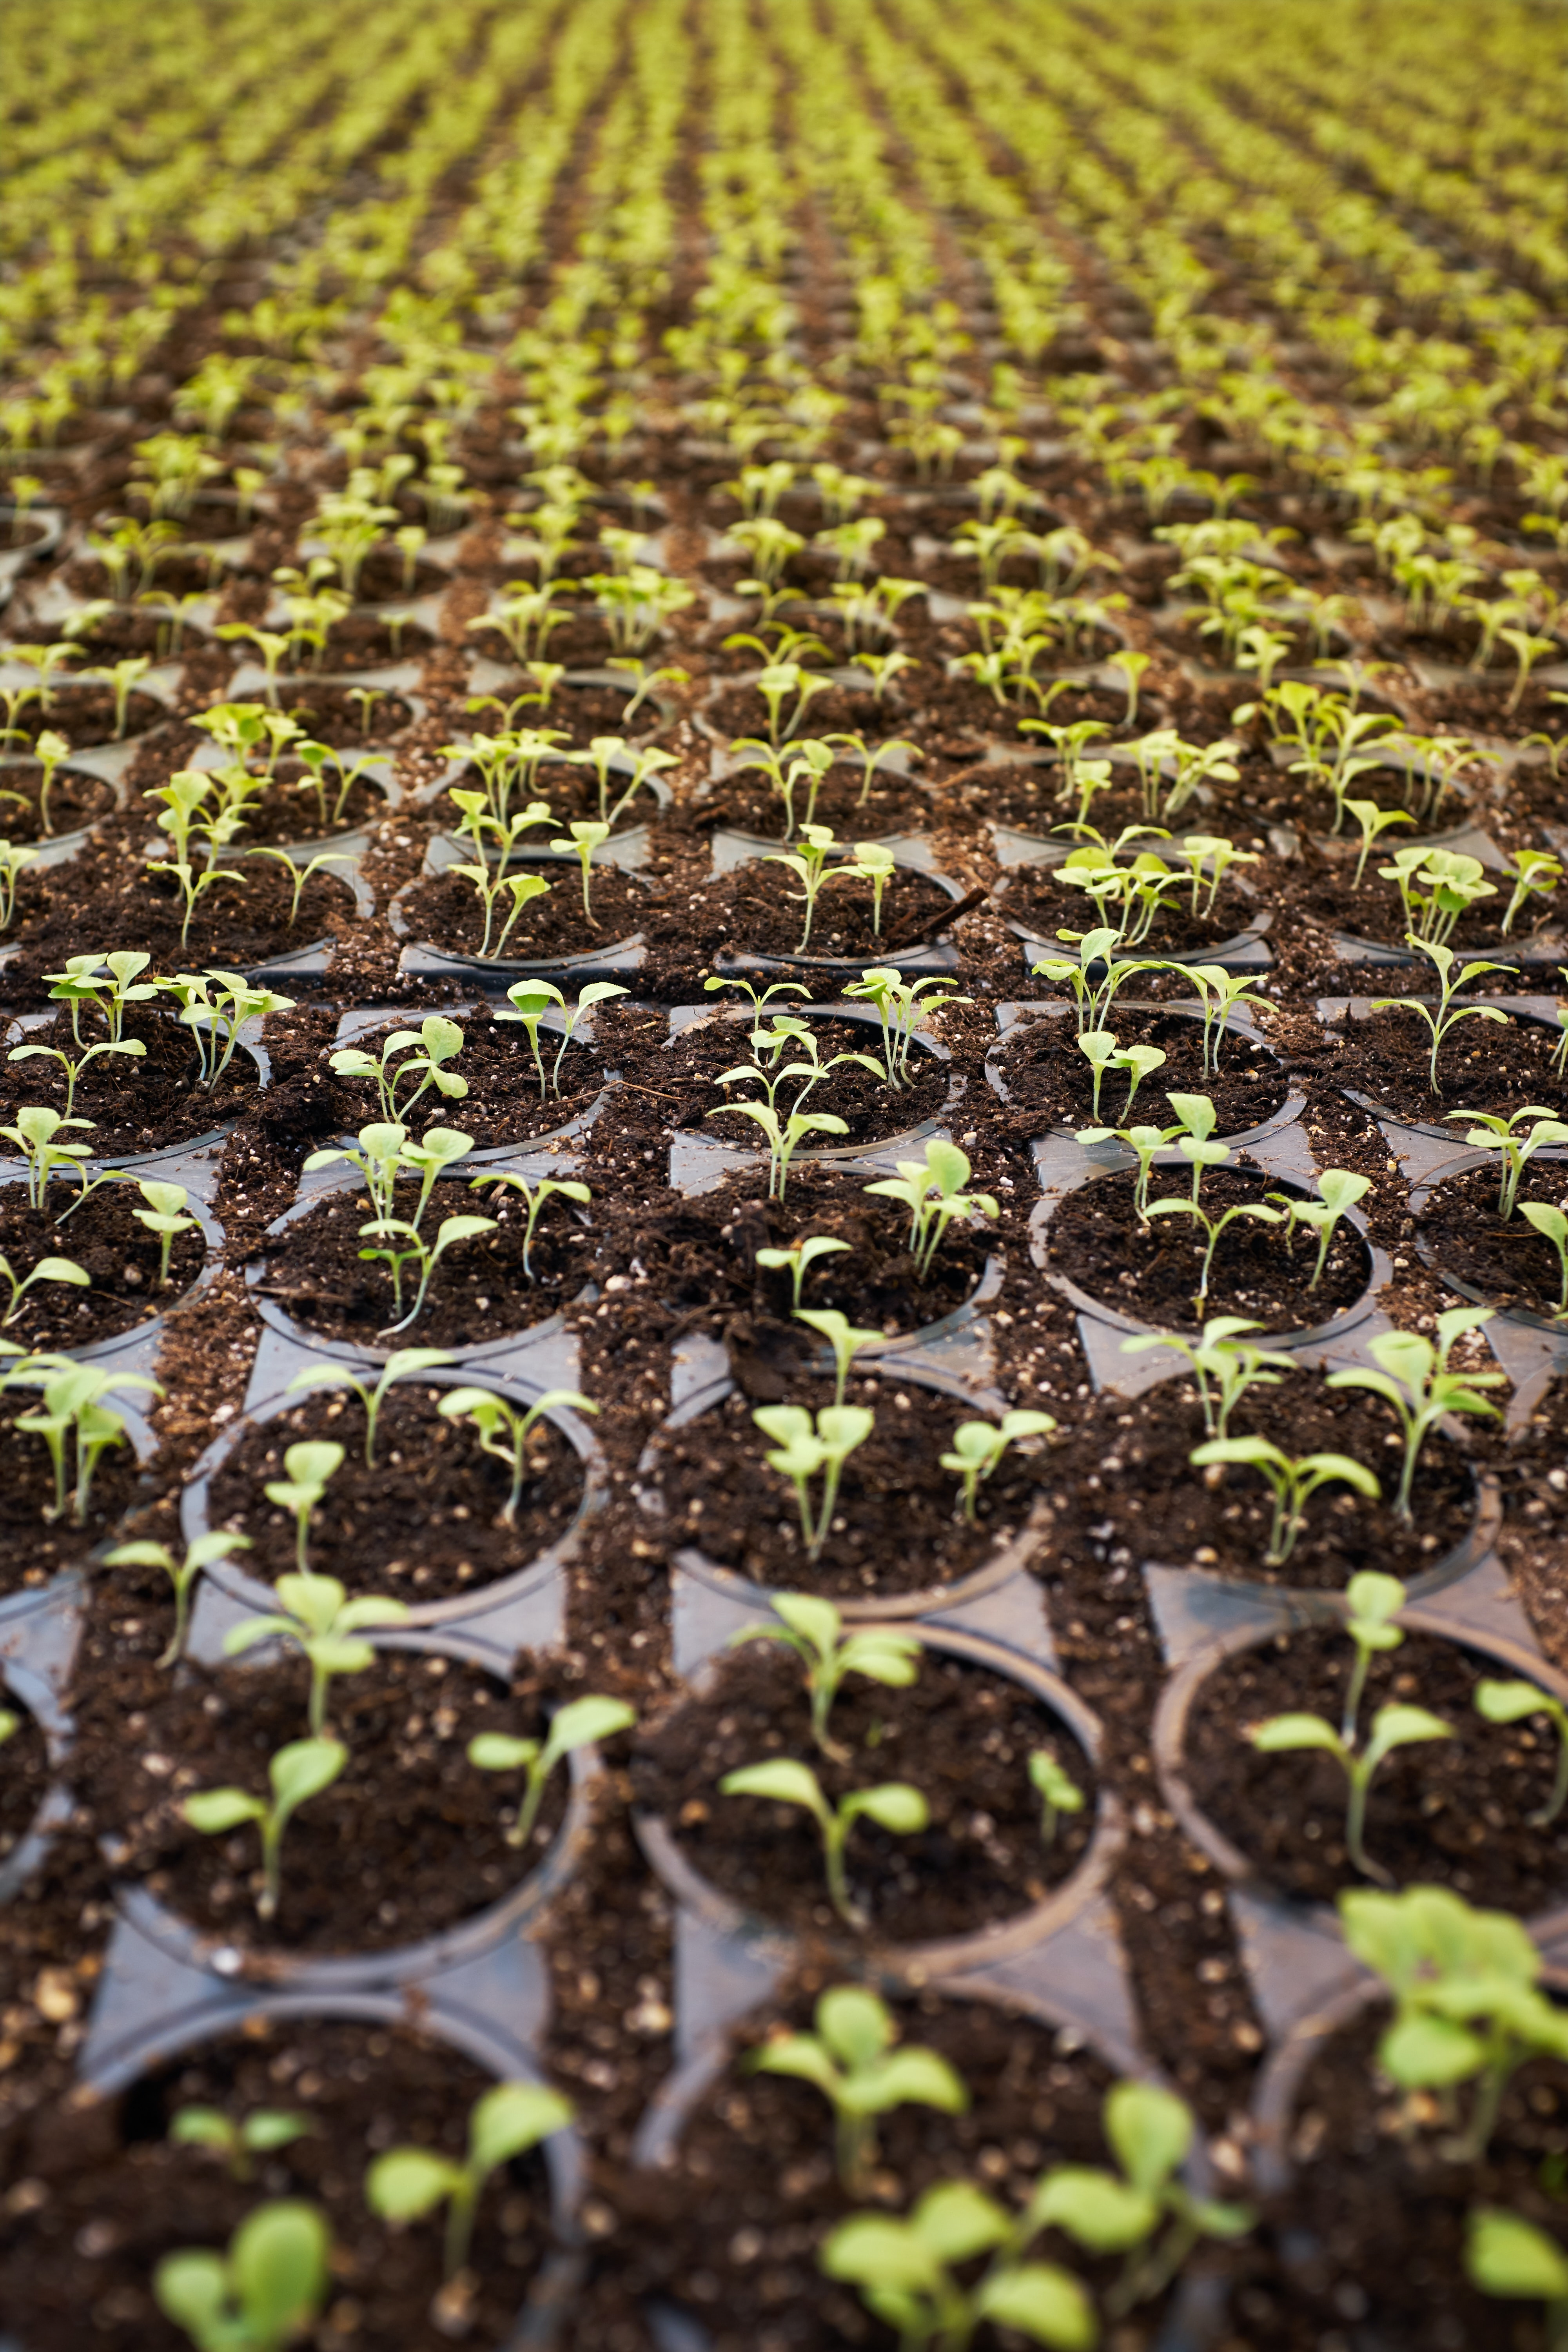 green leafed plant field planted on brown soil